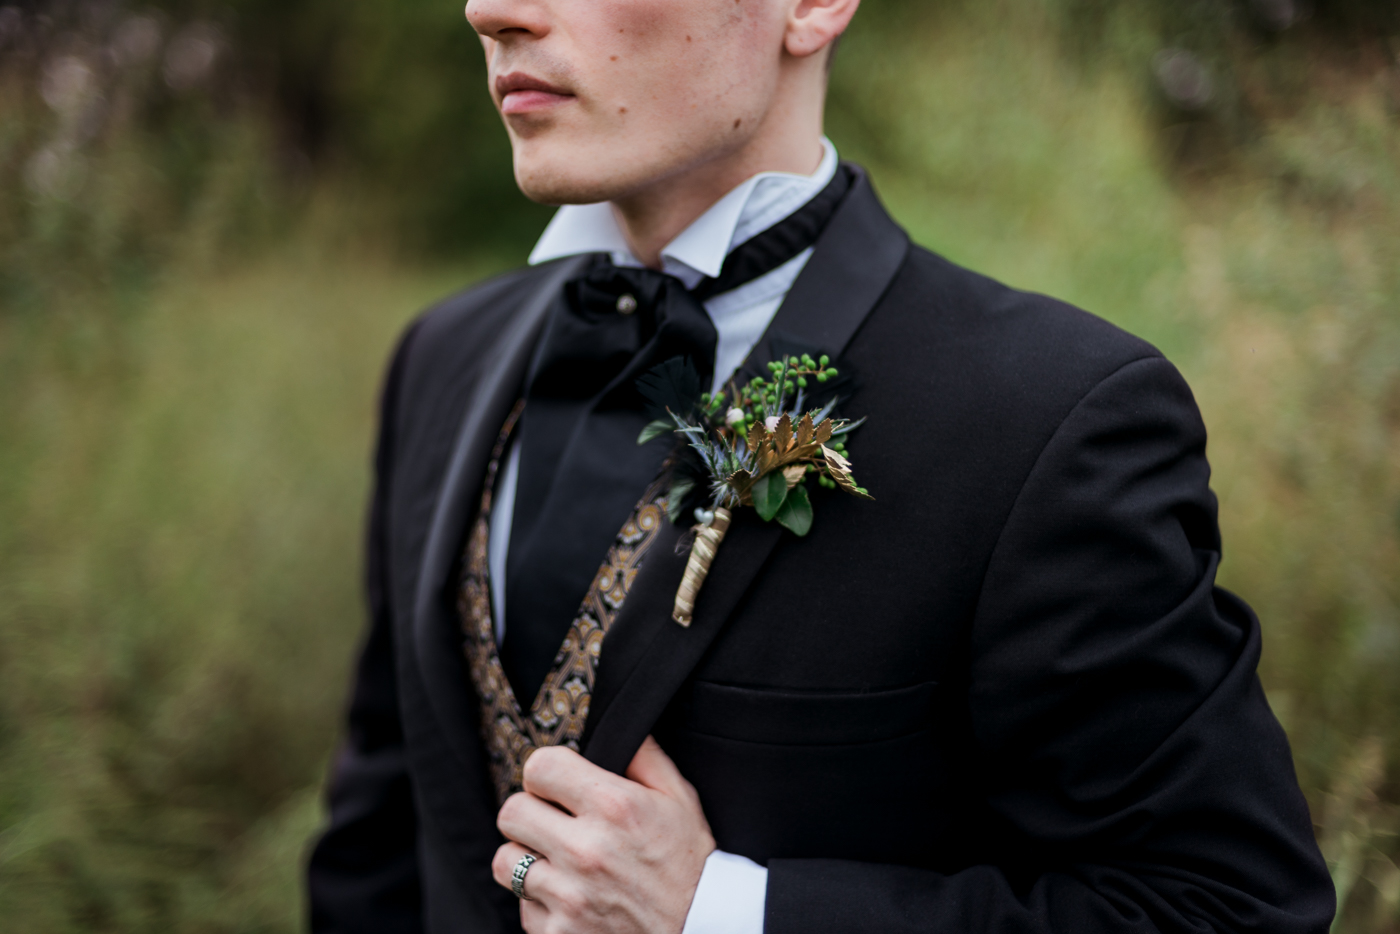 and-how-imaging-gothic-inspired-styled-shoot-gothic-wedding-1920s-theme-wedding-1920s-inspired-styled-shoot-halloween-styled-shoot-gothic-inspired-wedding-52